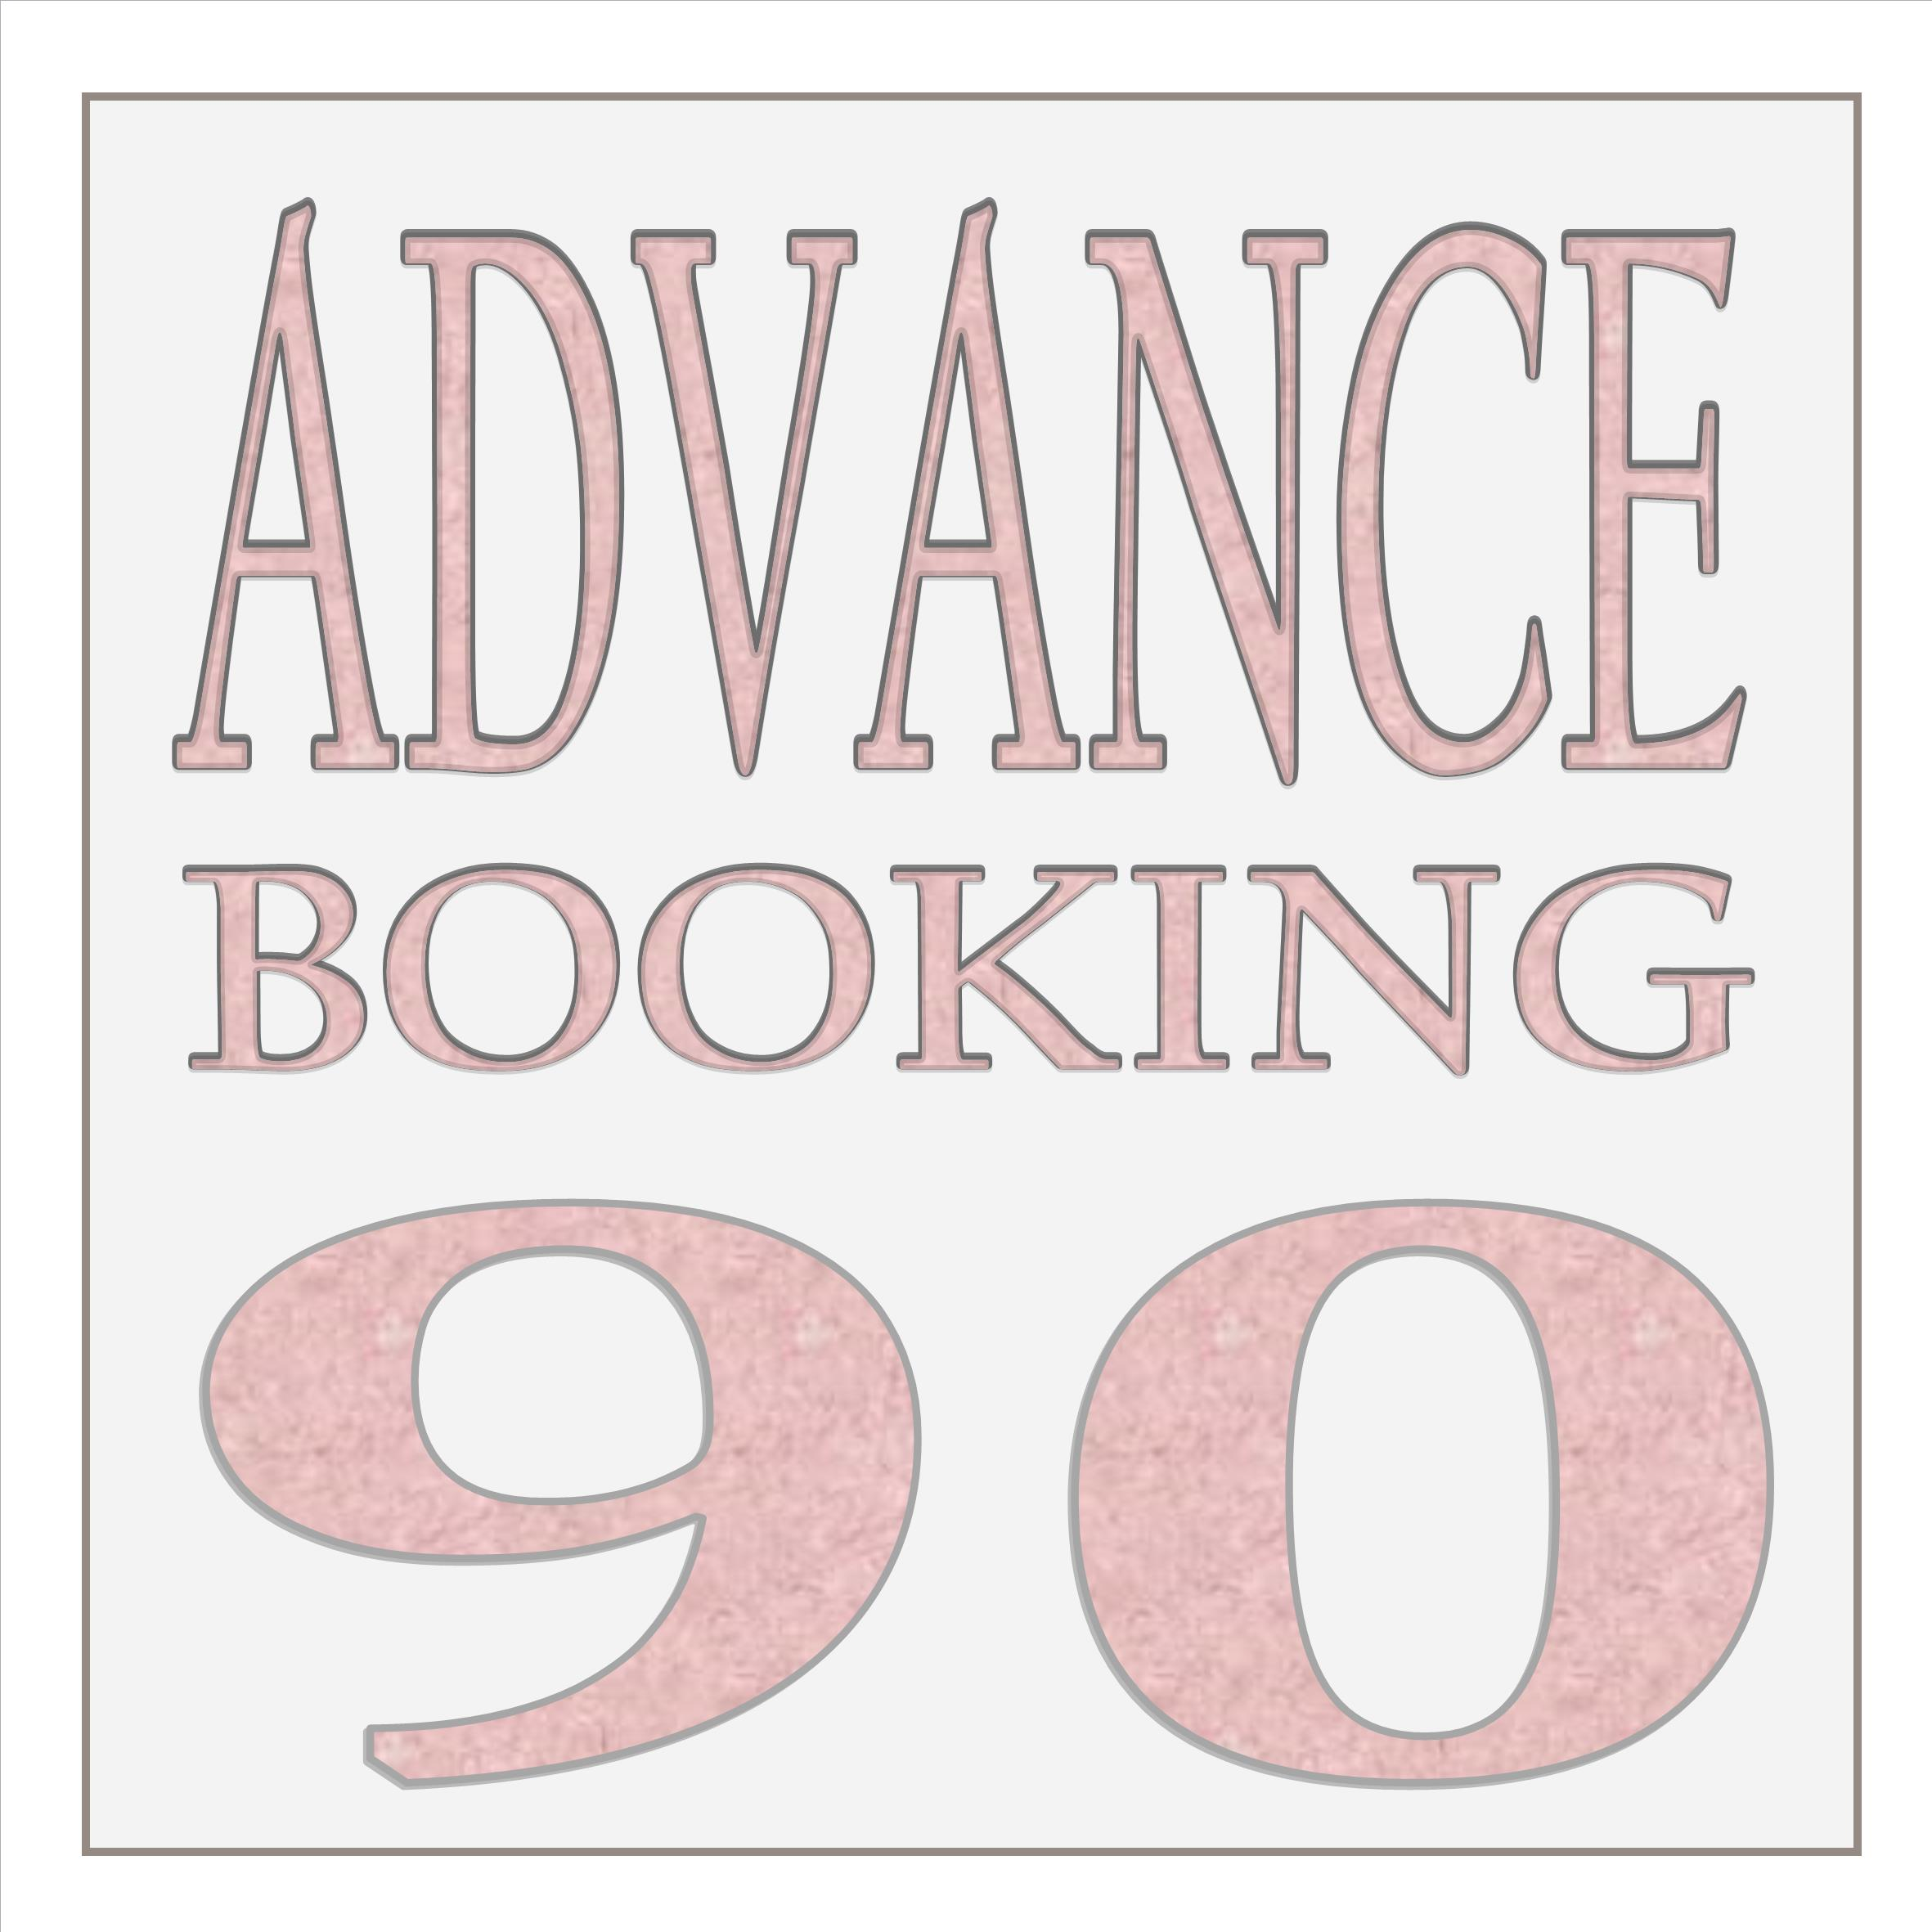 EARLY BOOKING 90